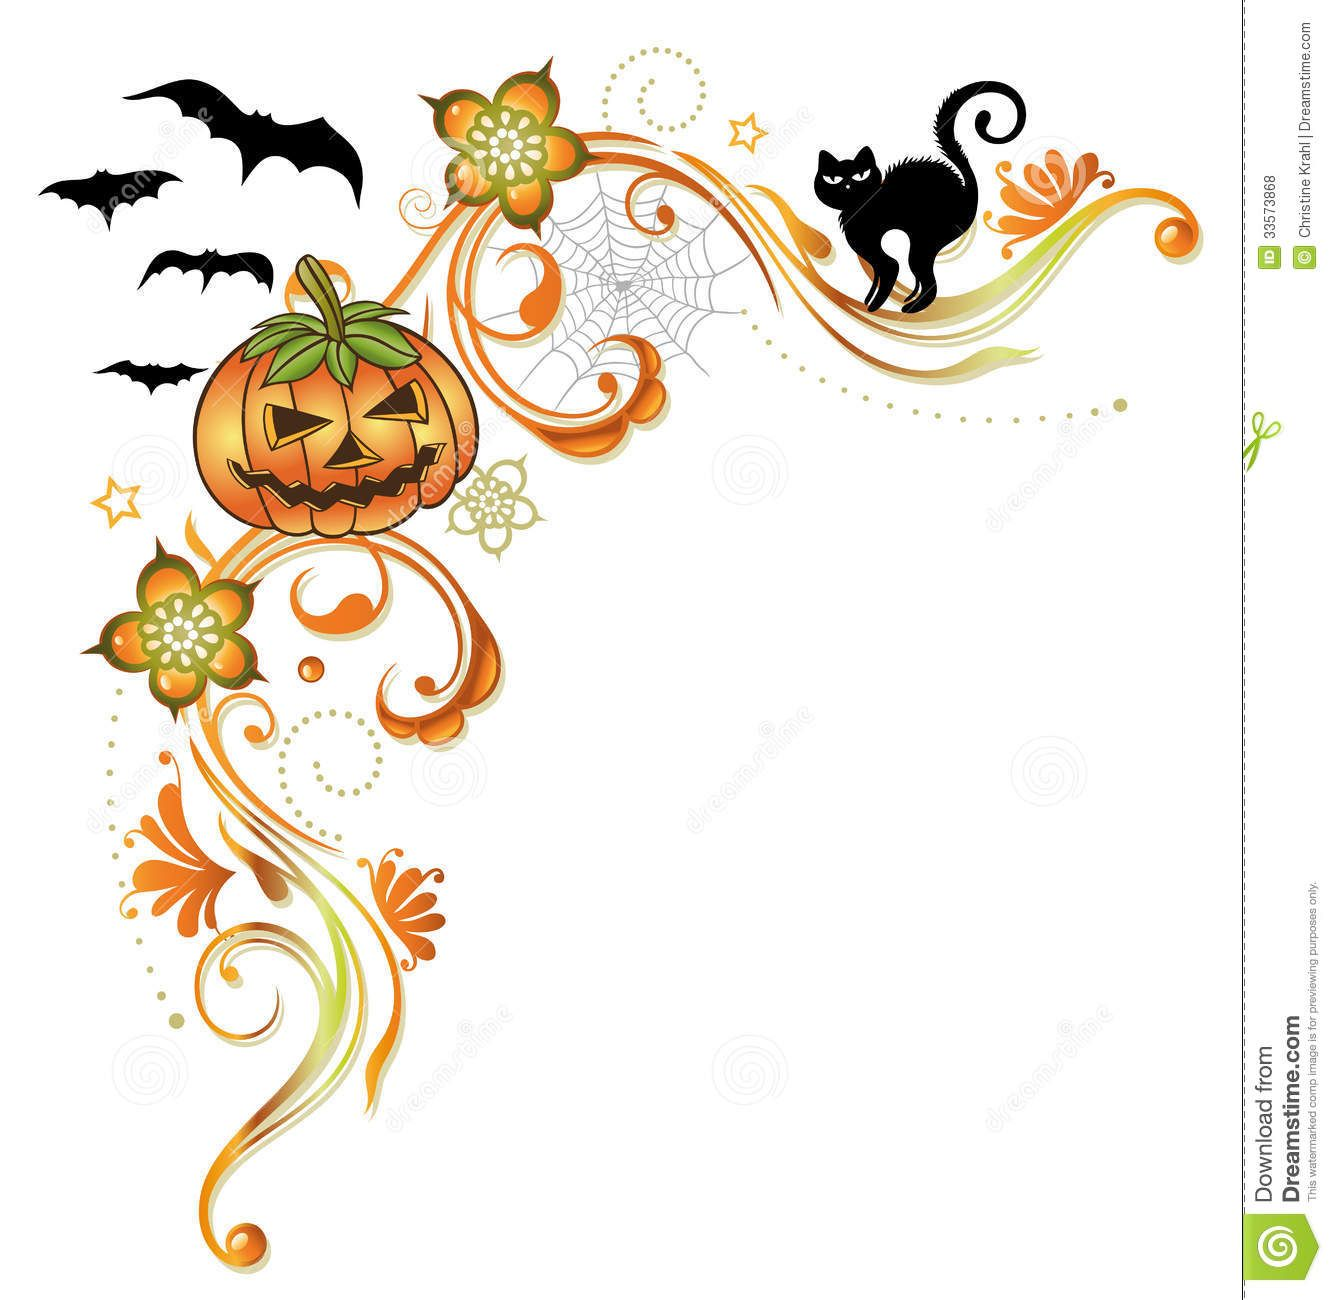 free halloween clip art halloween borders pumpkins halloween border rh pinterest com halloween clip art borders and frames halloween clip art border for a word document